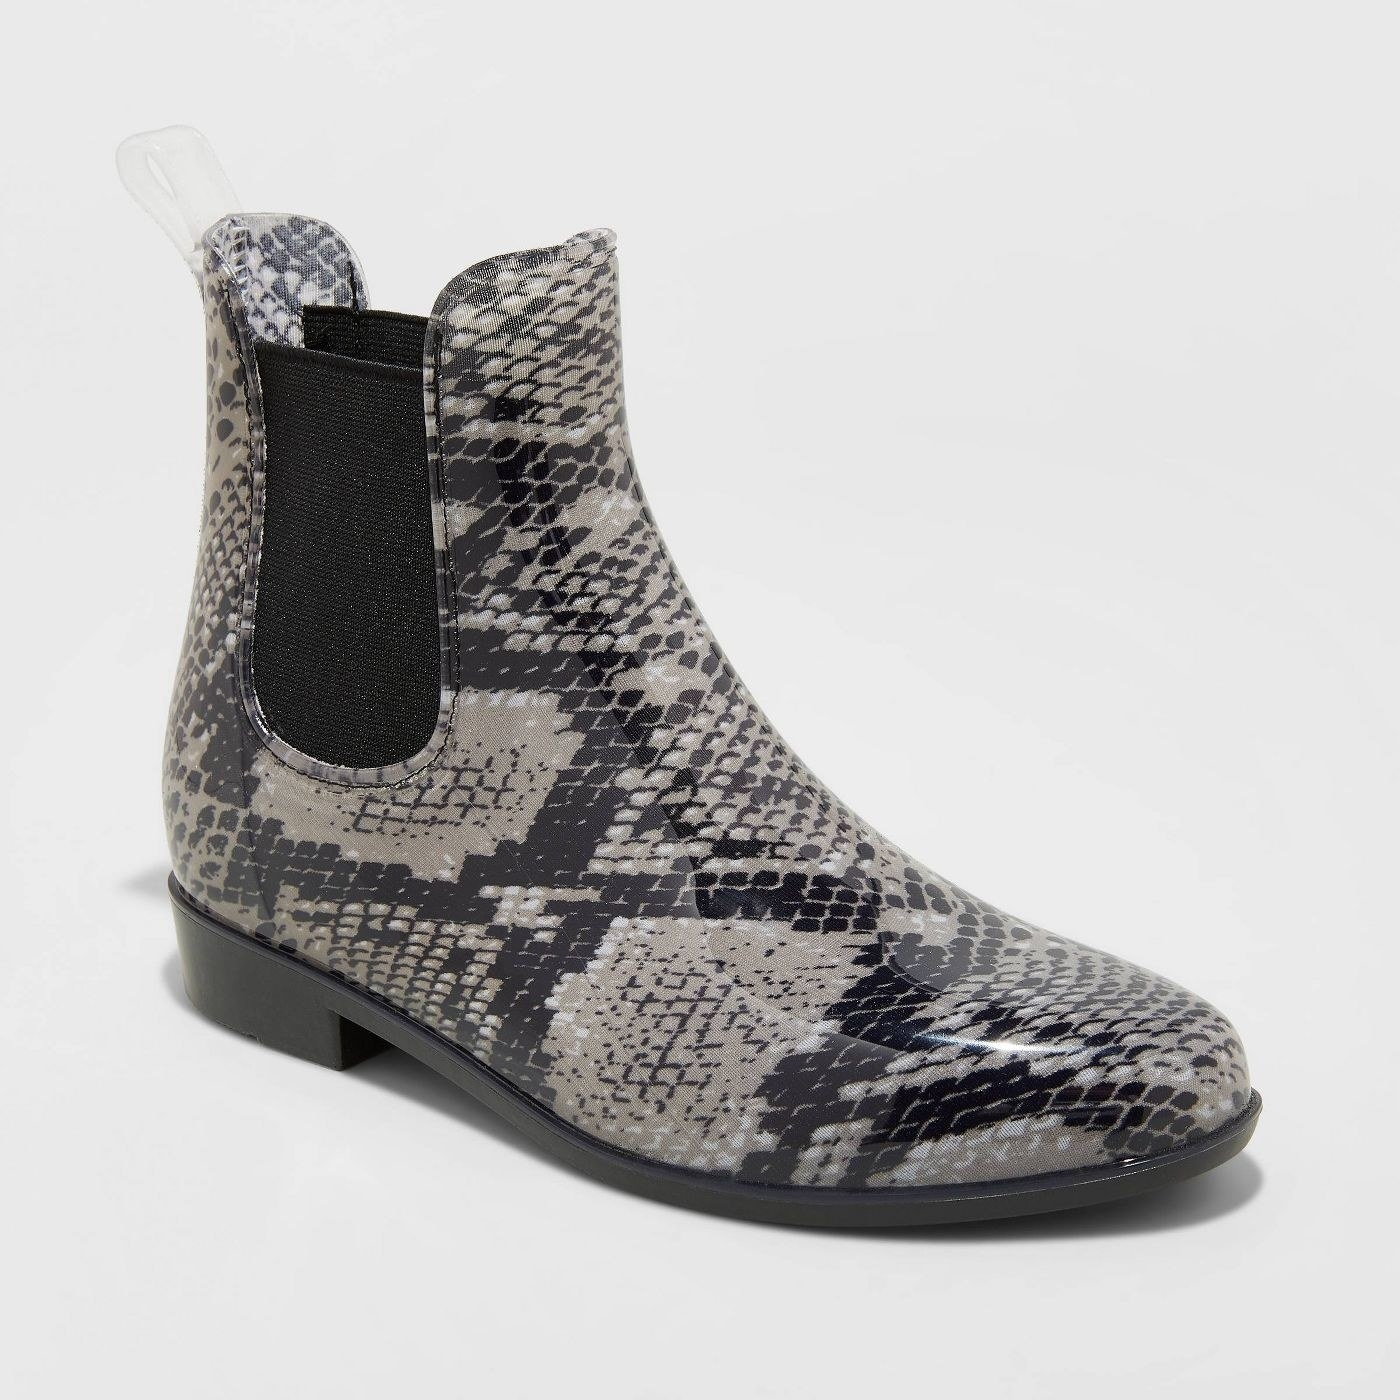 The rain boots in snake print pattern